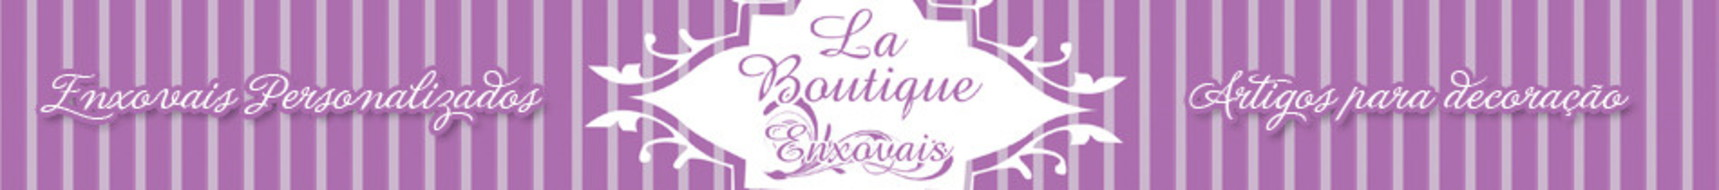 La Boutique Enxovais